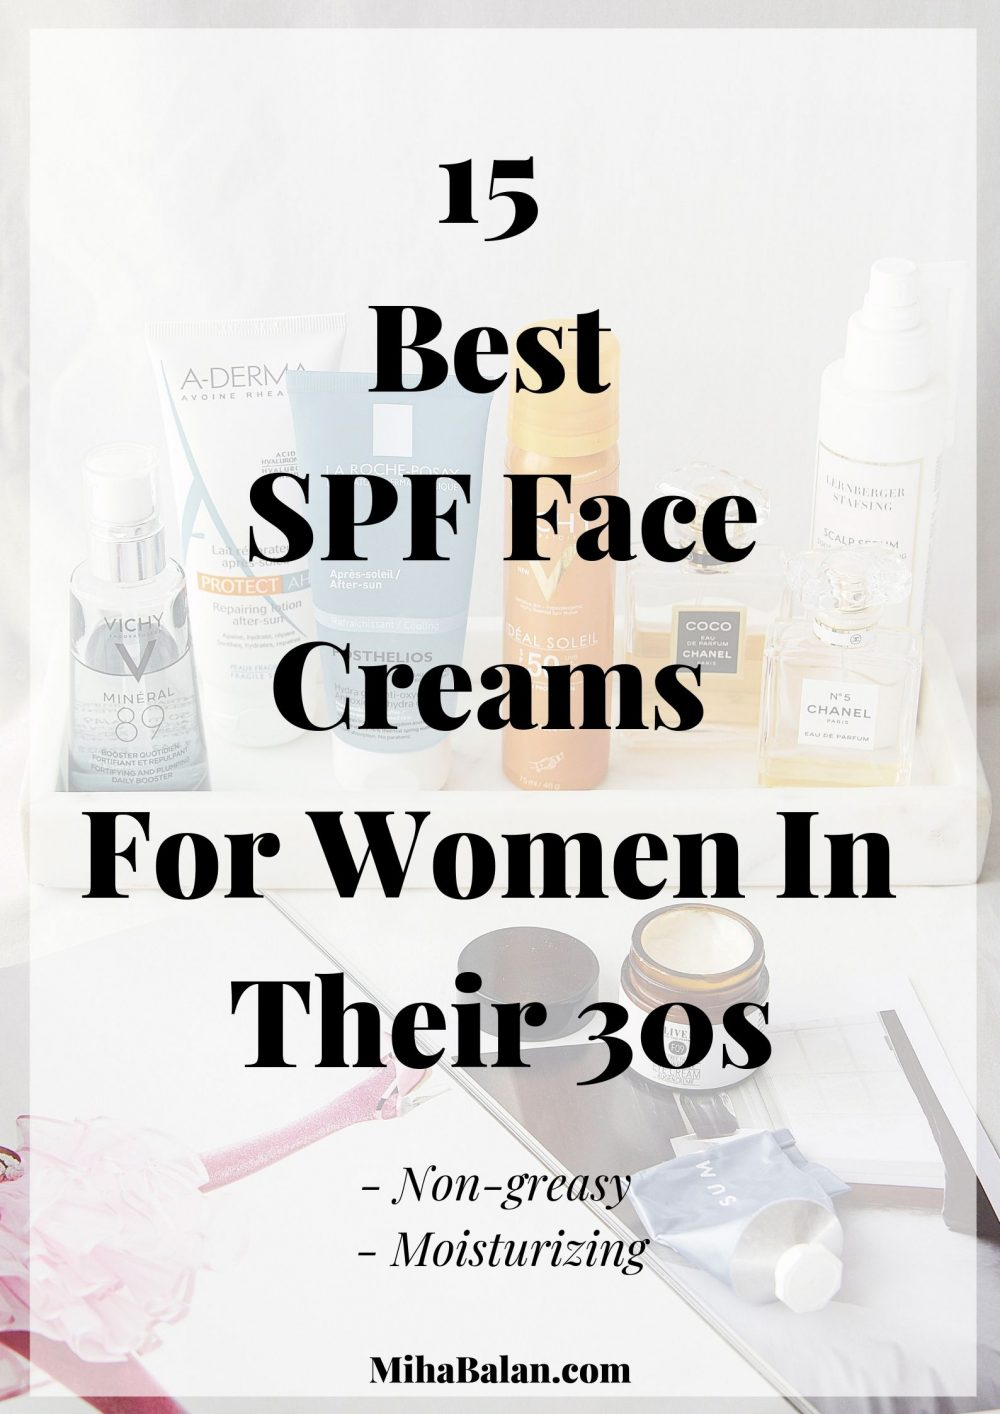 15 Best SPF Face Creams For Women In Their 30s., non greasy, moisturizing, hydrating face creams, skincare products, wellness, face care, SPF protection 1